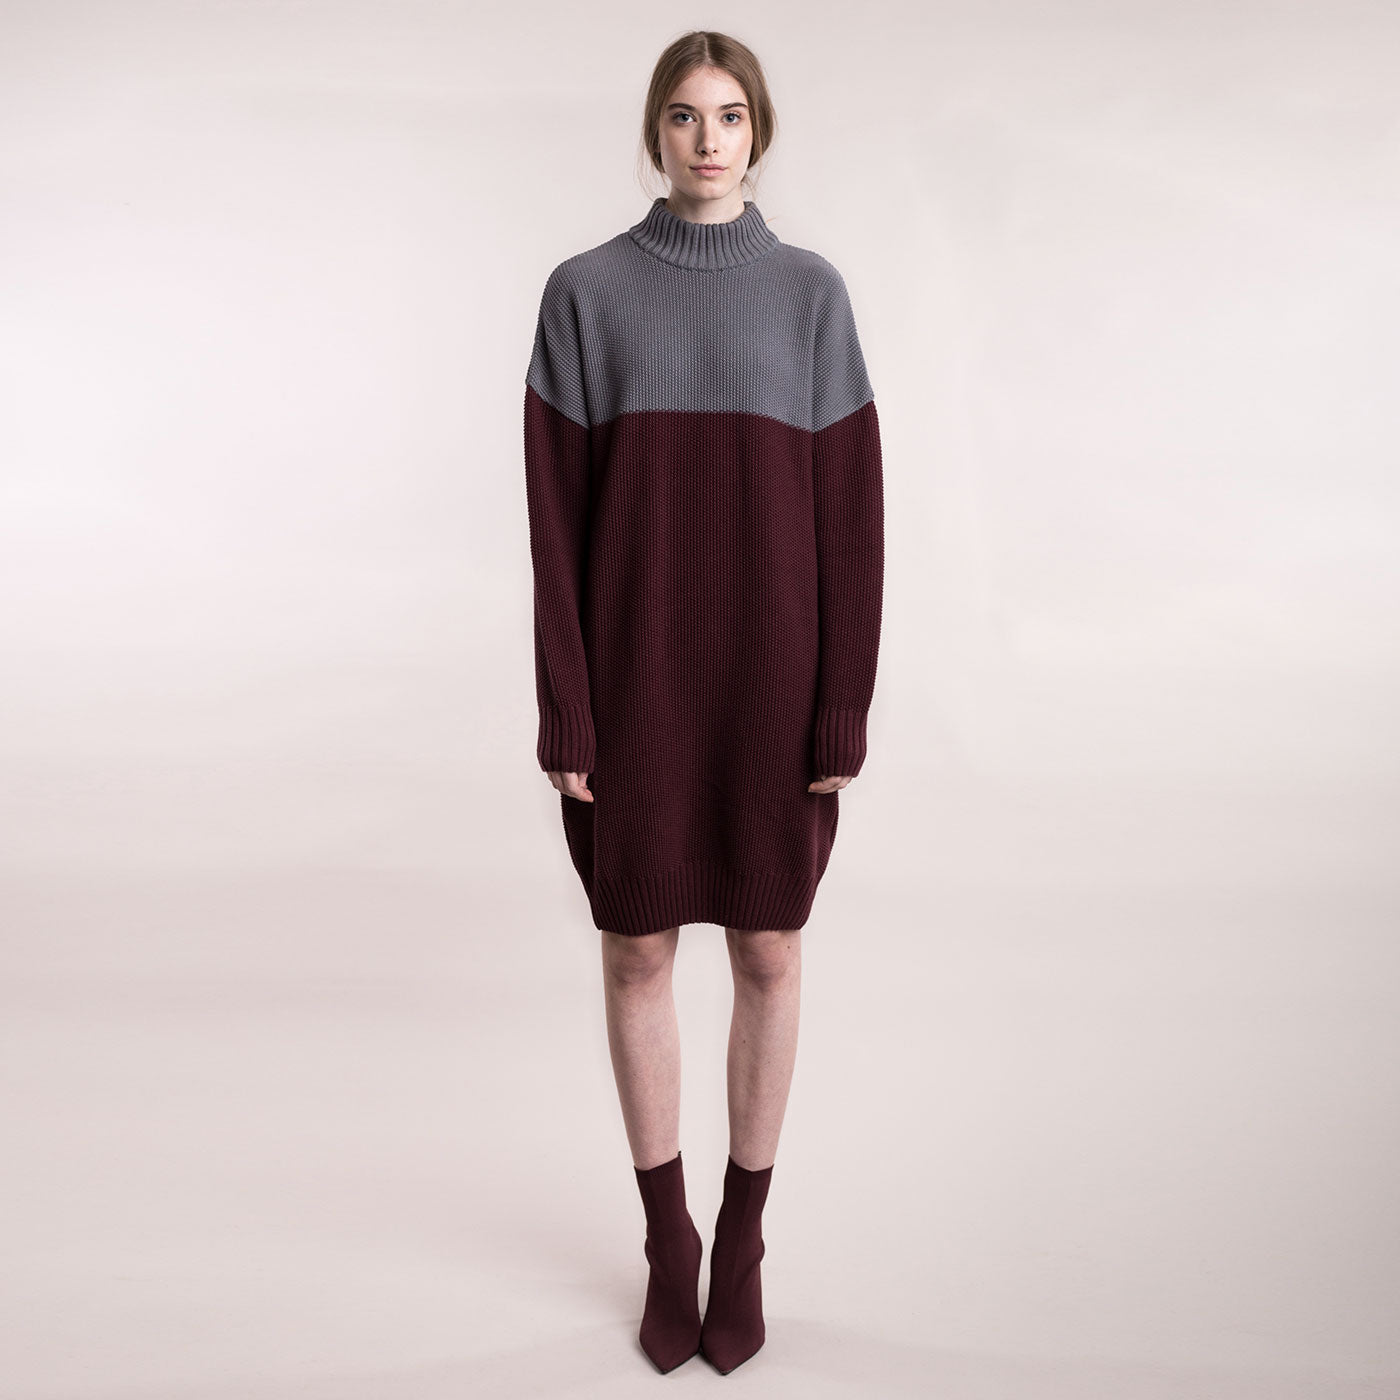 The model wears a grey and burgundy, sustainable organic cotton, knitted double-colour dress, frontal view.